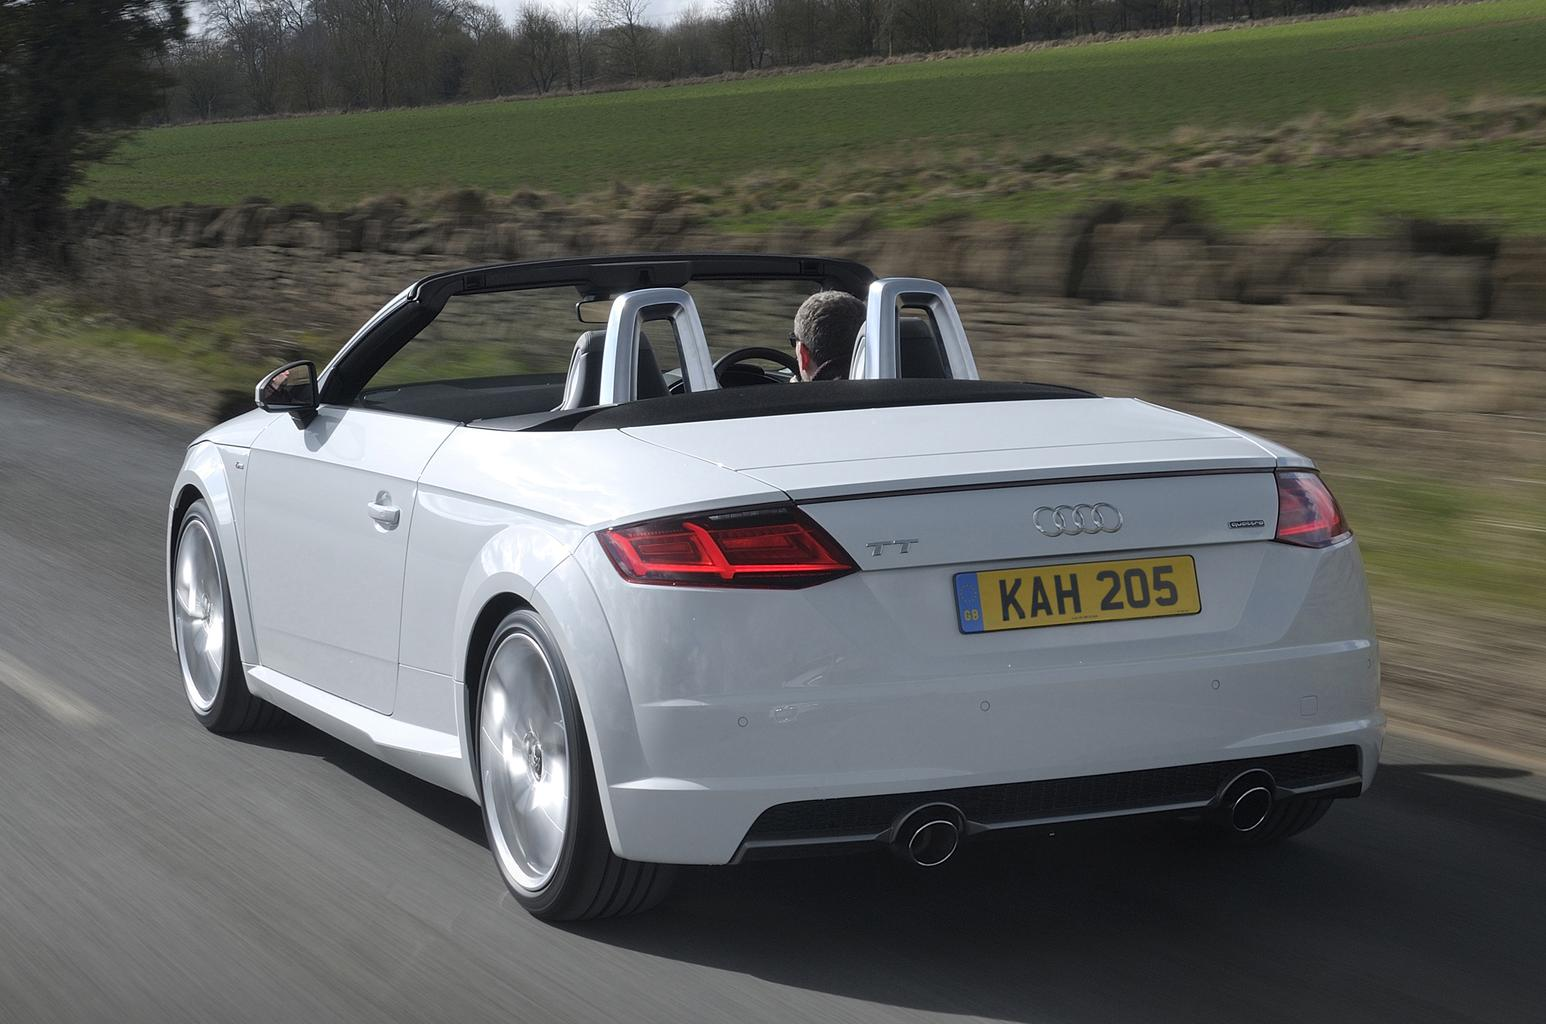 2016 Audi TT Roadster 1.8 TFSI review